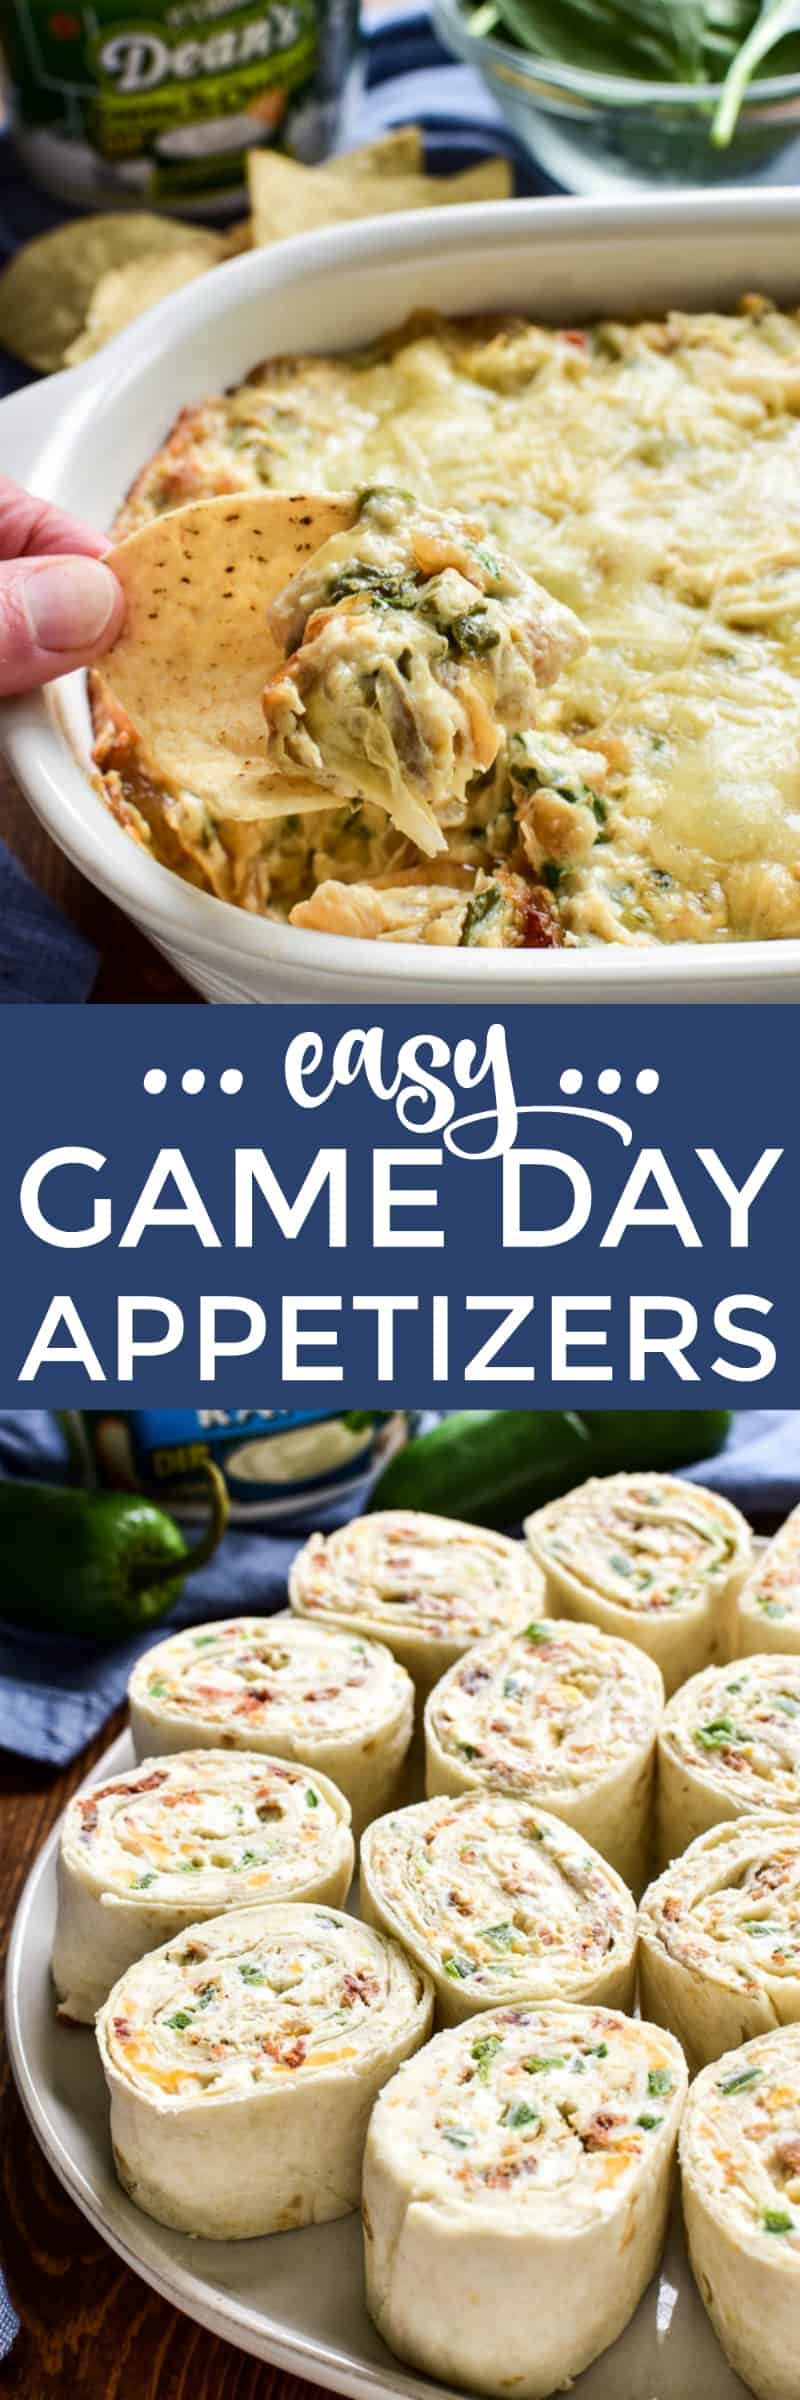 #sponsored These easy Super Bowl appetizers start with @deansdip and are packed with the most amazing flavor! Whether you're looking for a yummy twist on spinach artichoke dip or a delicious new way to enjoy jalapeño poppers, these recipes are guaranteed to be crowd pleasers! #deansdip #deansdipgameday